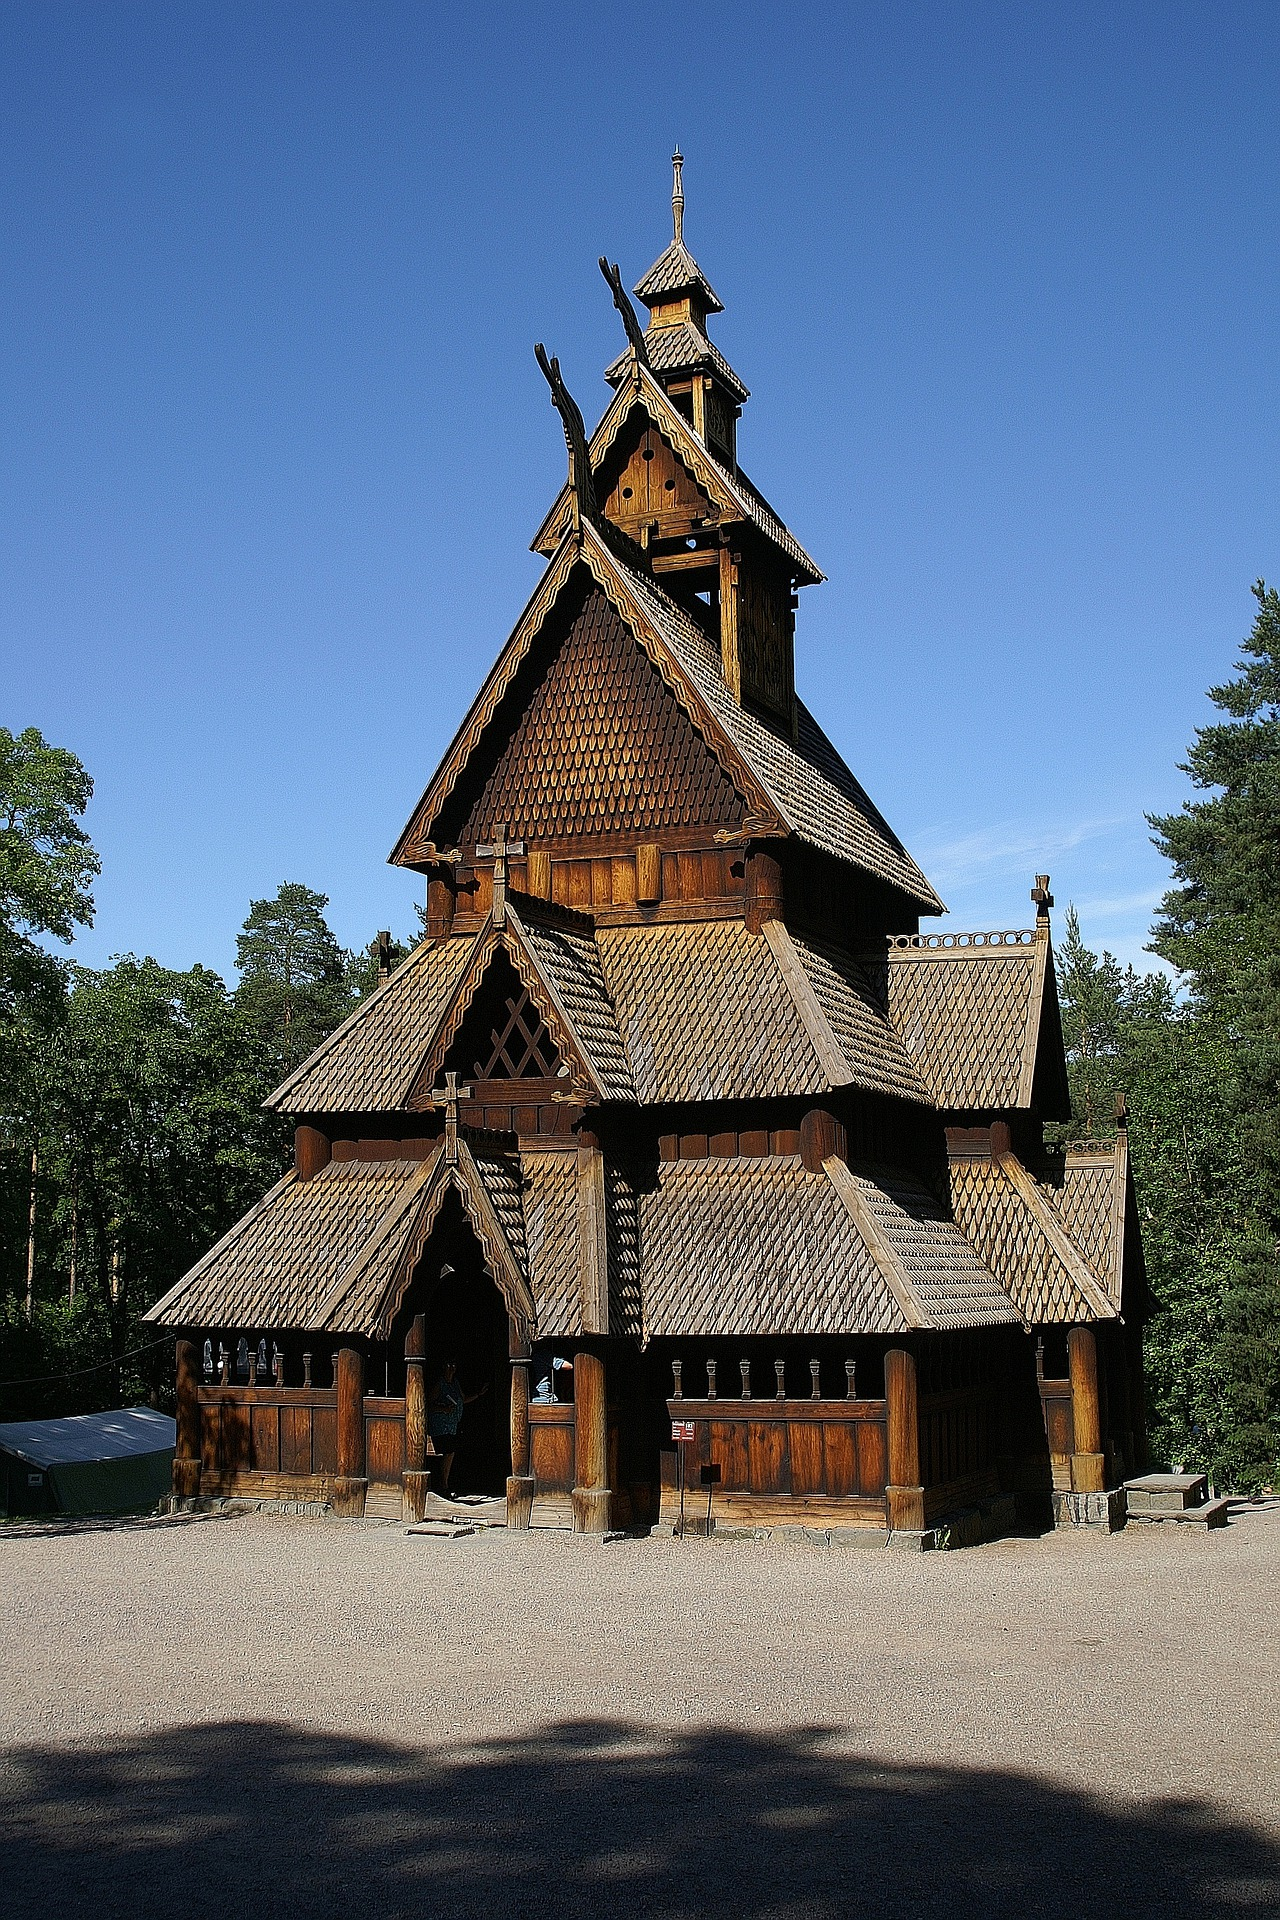 A wooden Stave church in Norway.